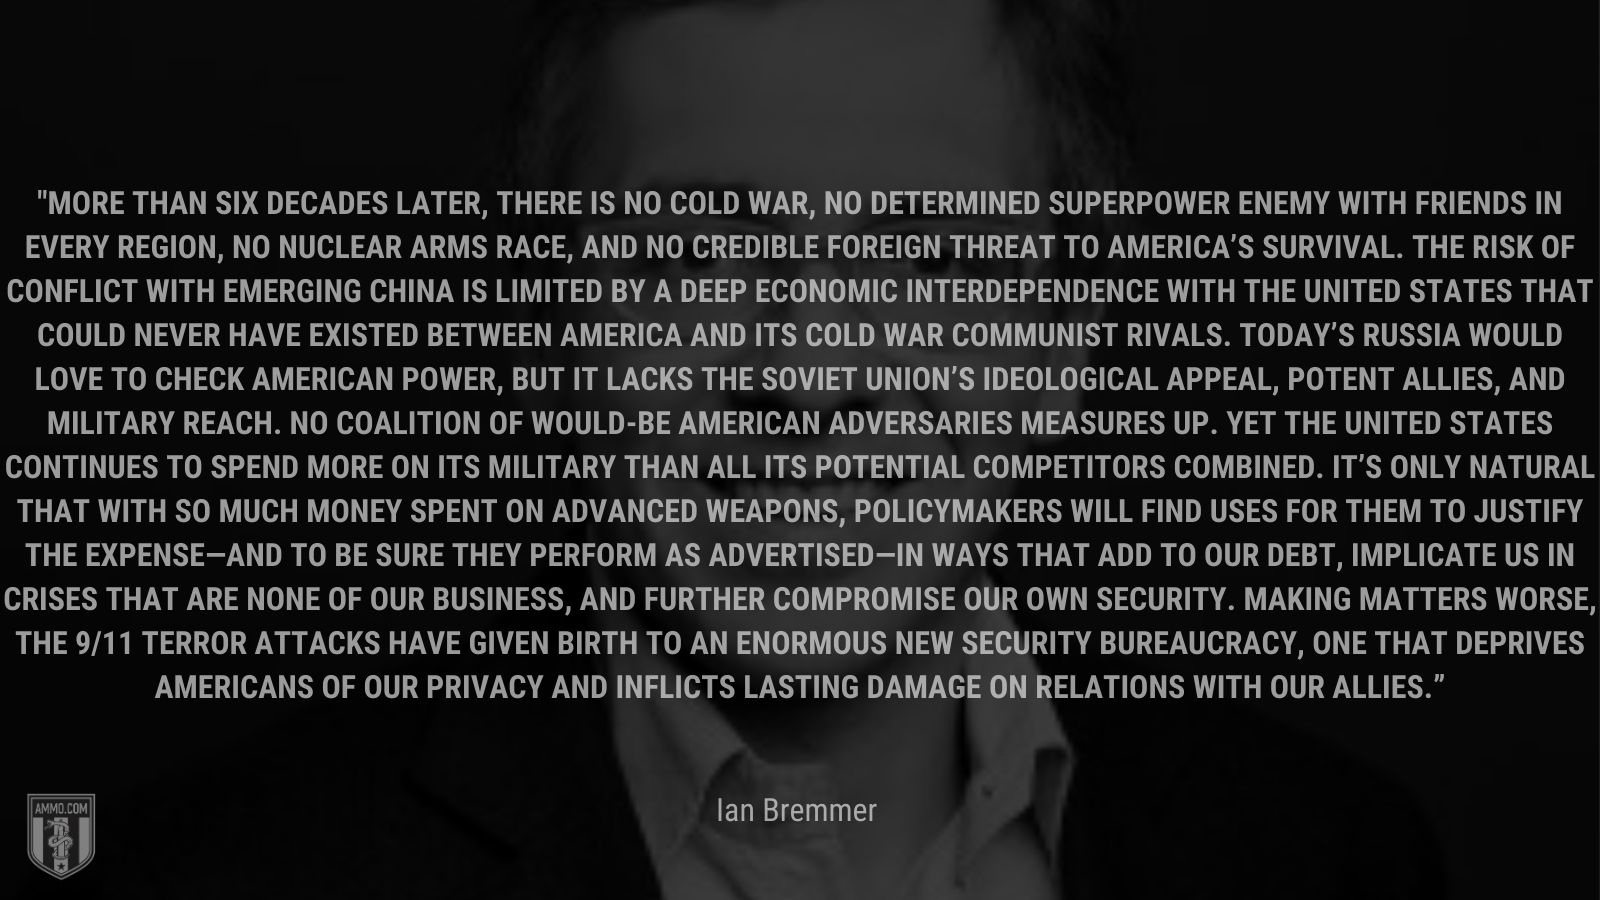 """""""More than six decades later, there is no Cold War, no determined superpower enemy with friends in every region, no nuclear arms race, and no credible foreign threat to America's survival. The risk of conflict with emerging China is limited by a deep economic interdependence with the United States that could never have existed between America and its Cold War communist rivals. Today's Russia would love to check American power, but it lacks the Soviet Union's ideological appeal, potent allies, and military reach. No coalition of would-be American adversaries measures up. Yet the United States continues to spend more on its military"""" - Ian Bremmer"""